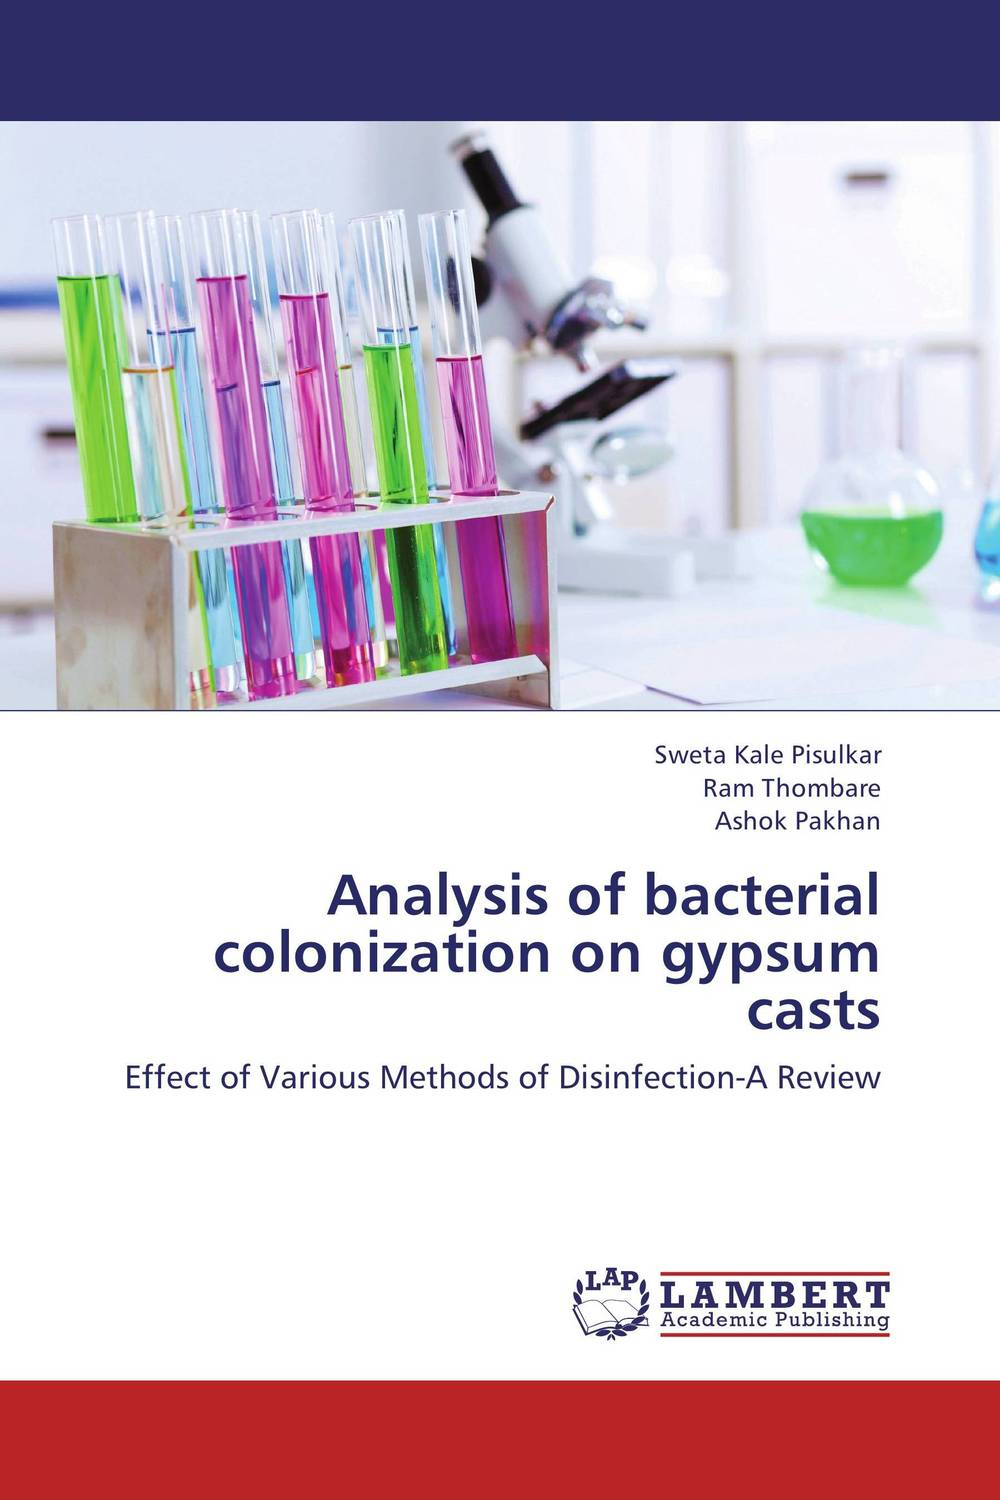 Analysis of bacterial colonization on gypsum casts